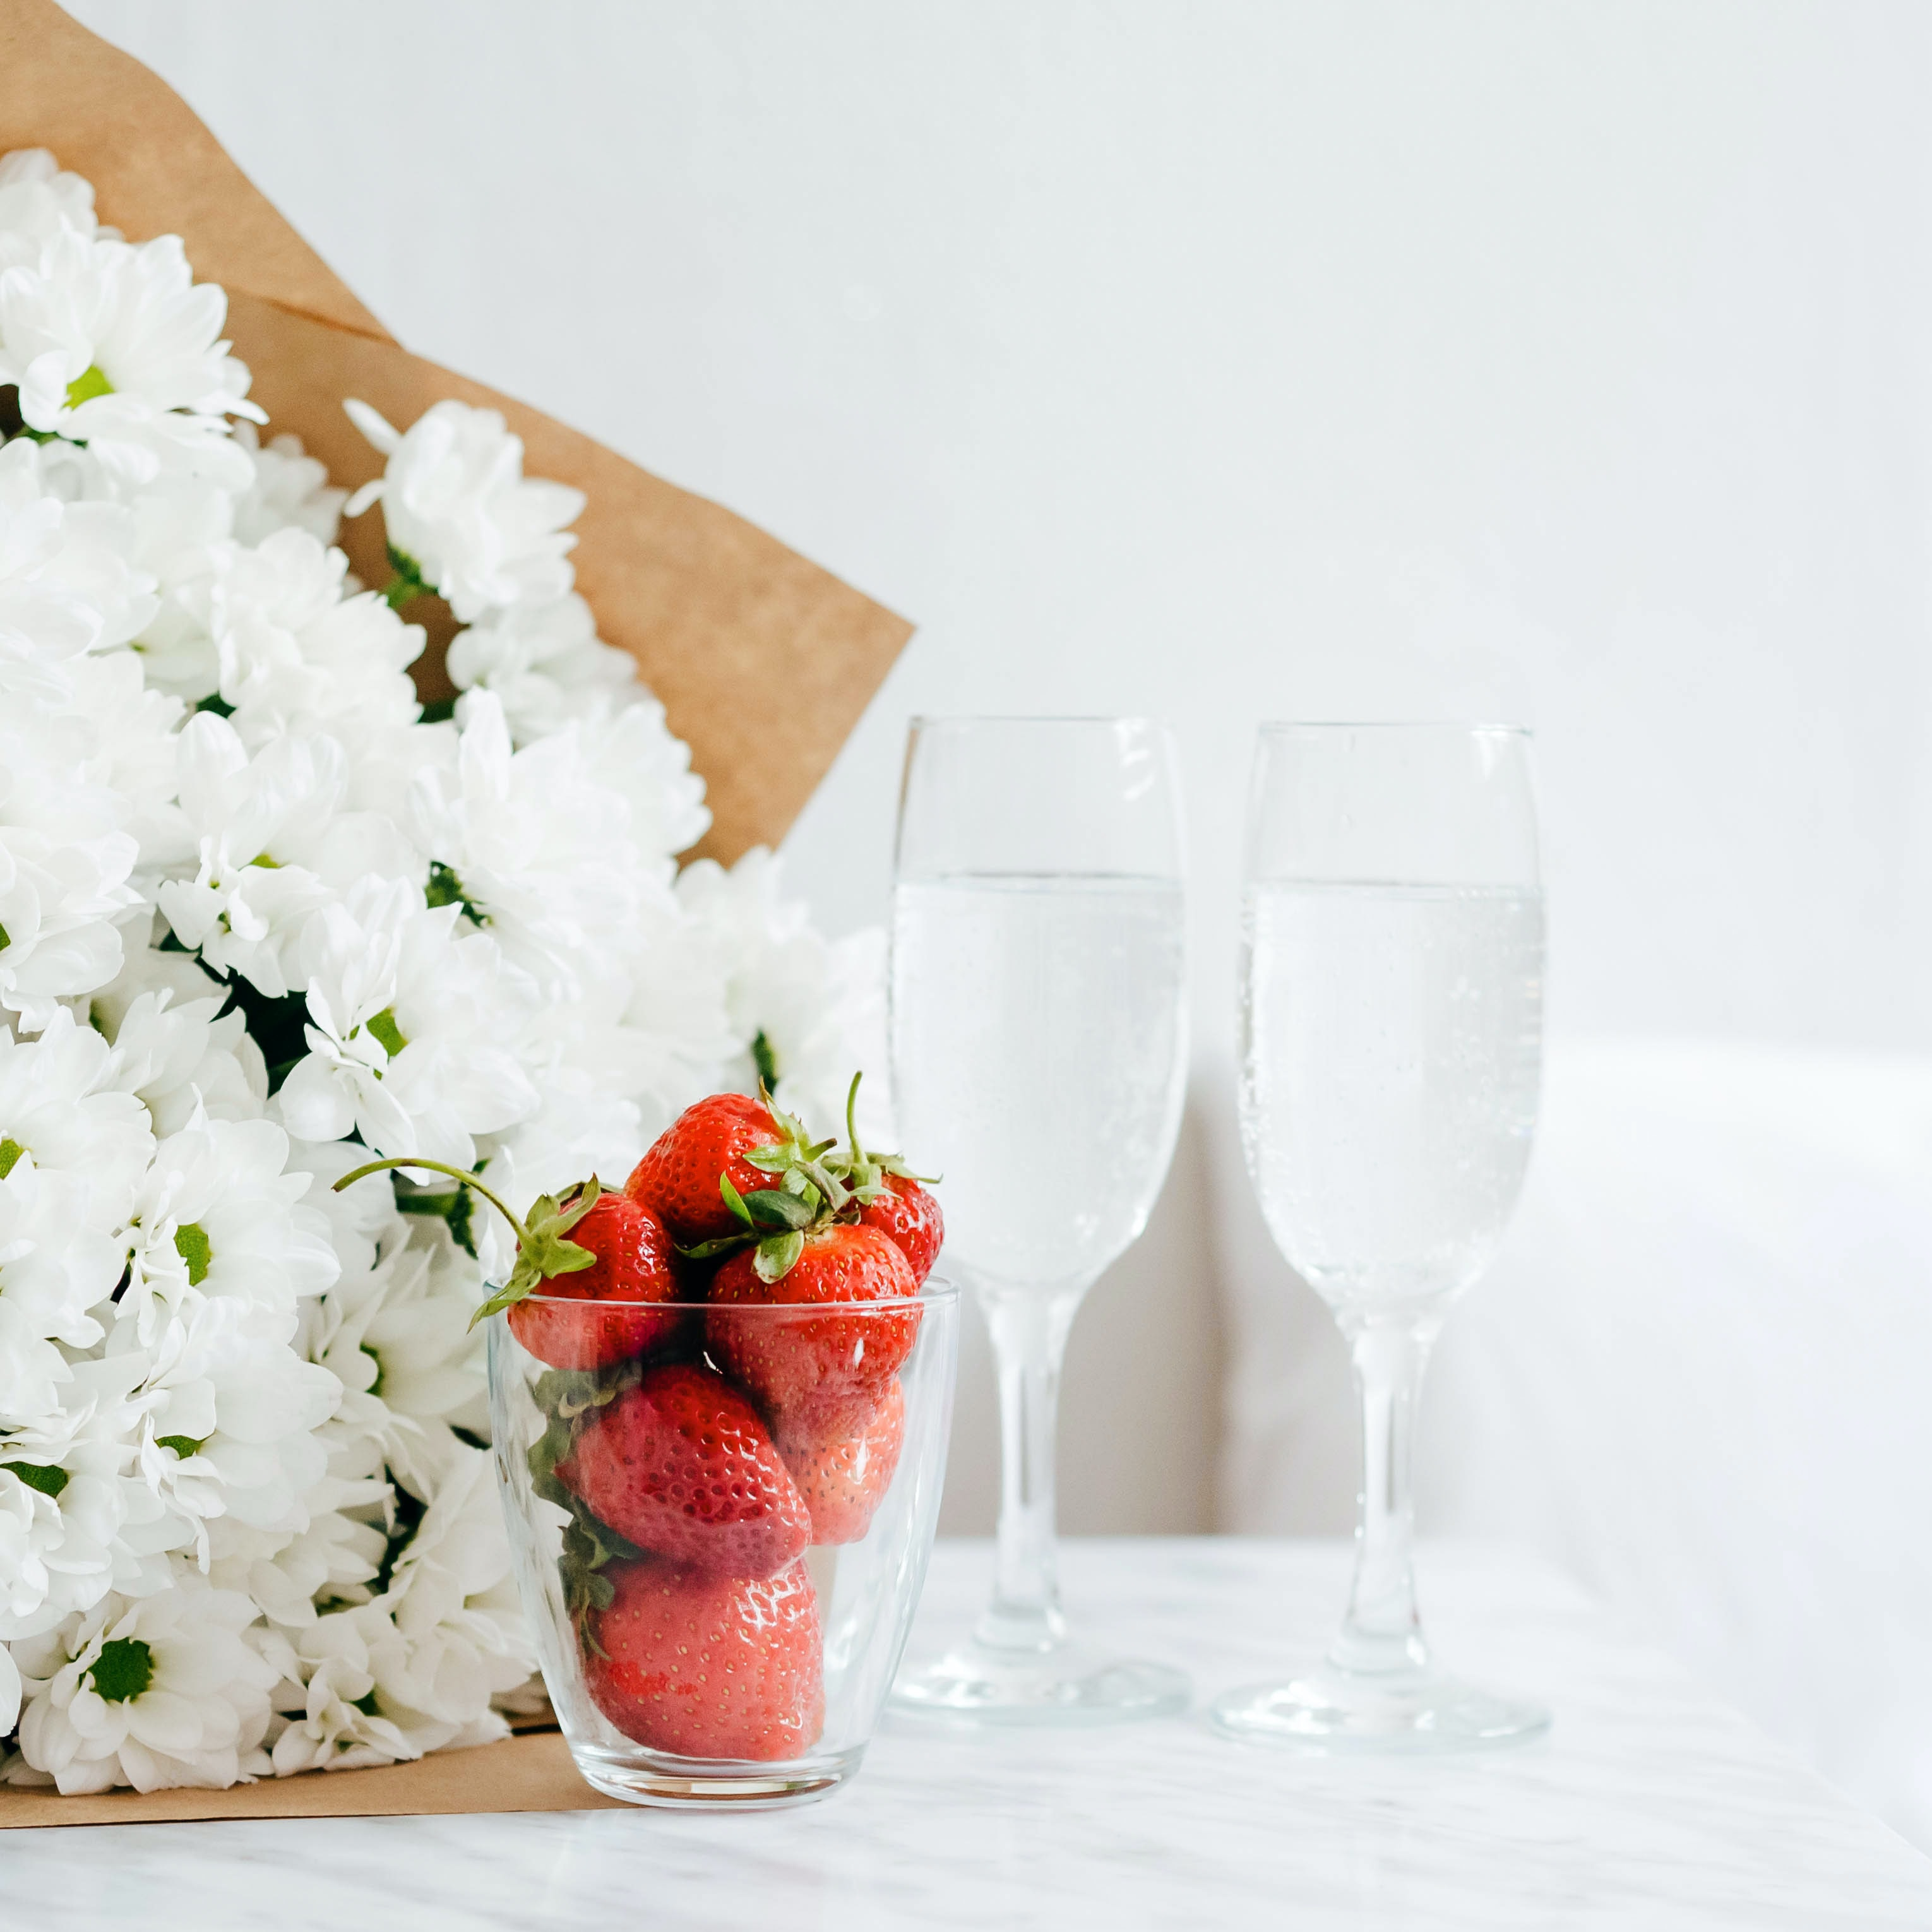 red strawberries filled glass cup beside white flower bouquet